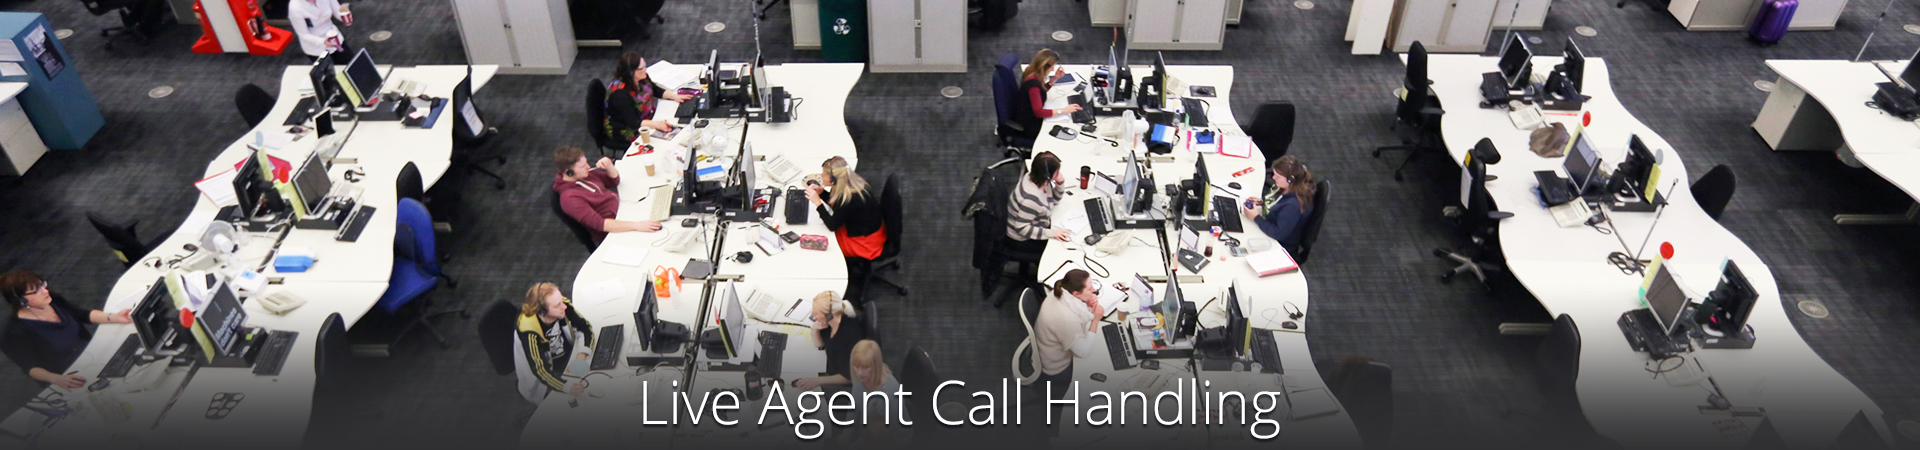 Live Agent Call Handling